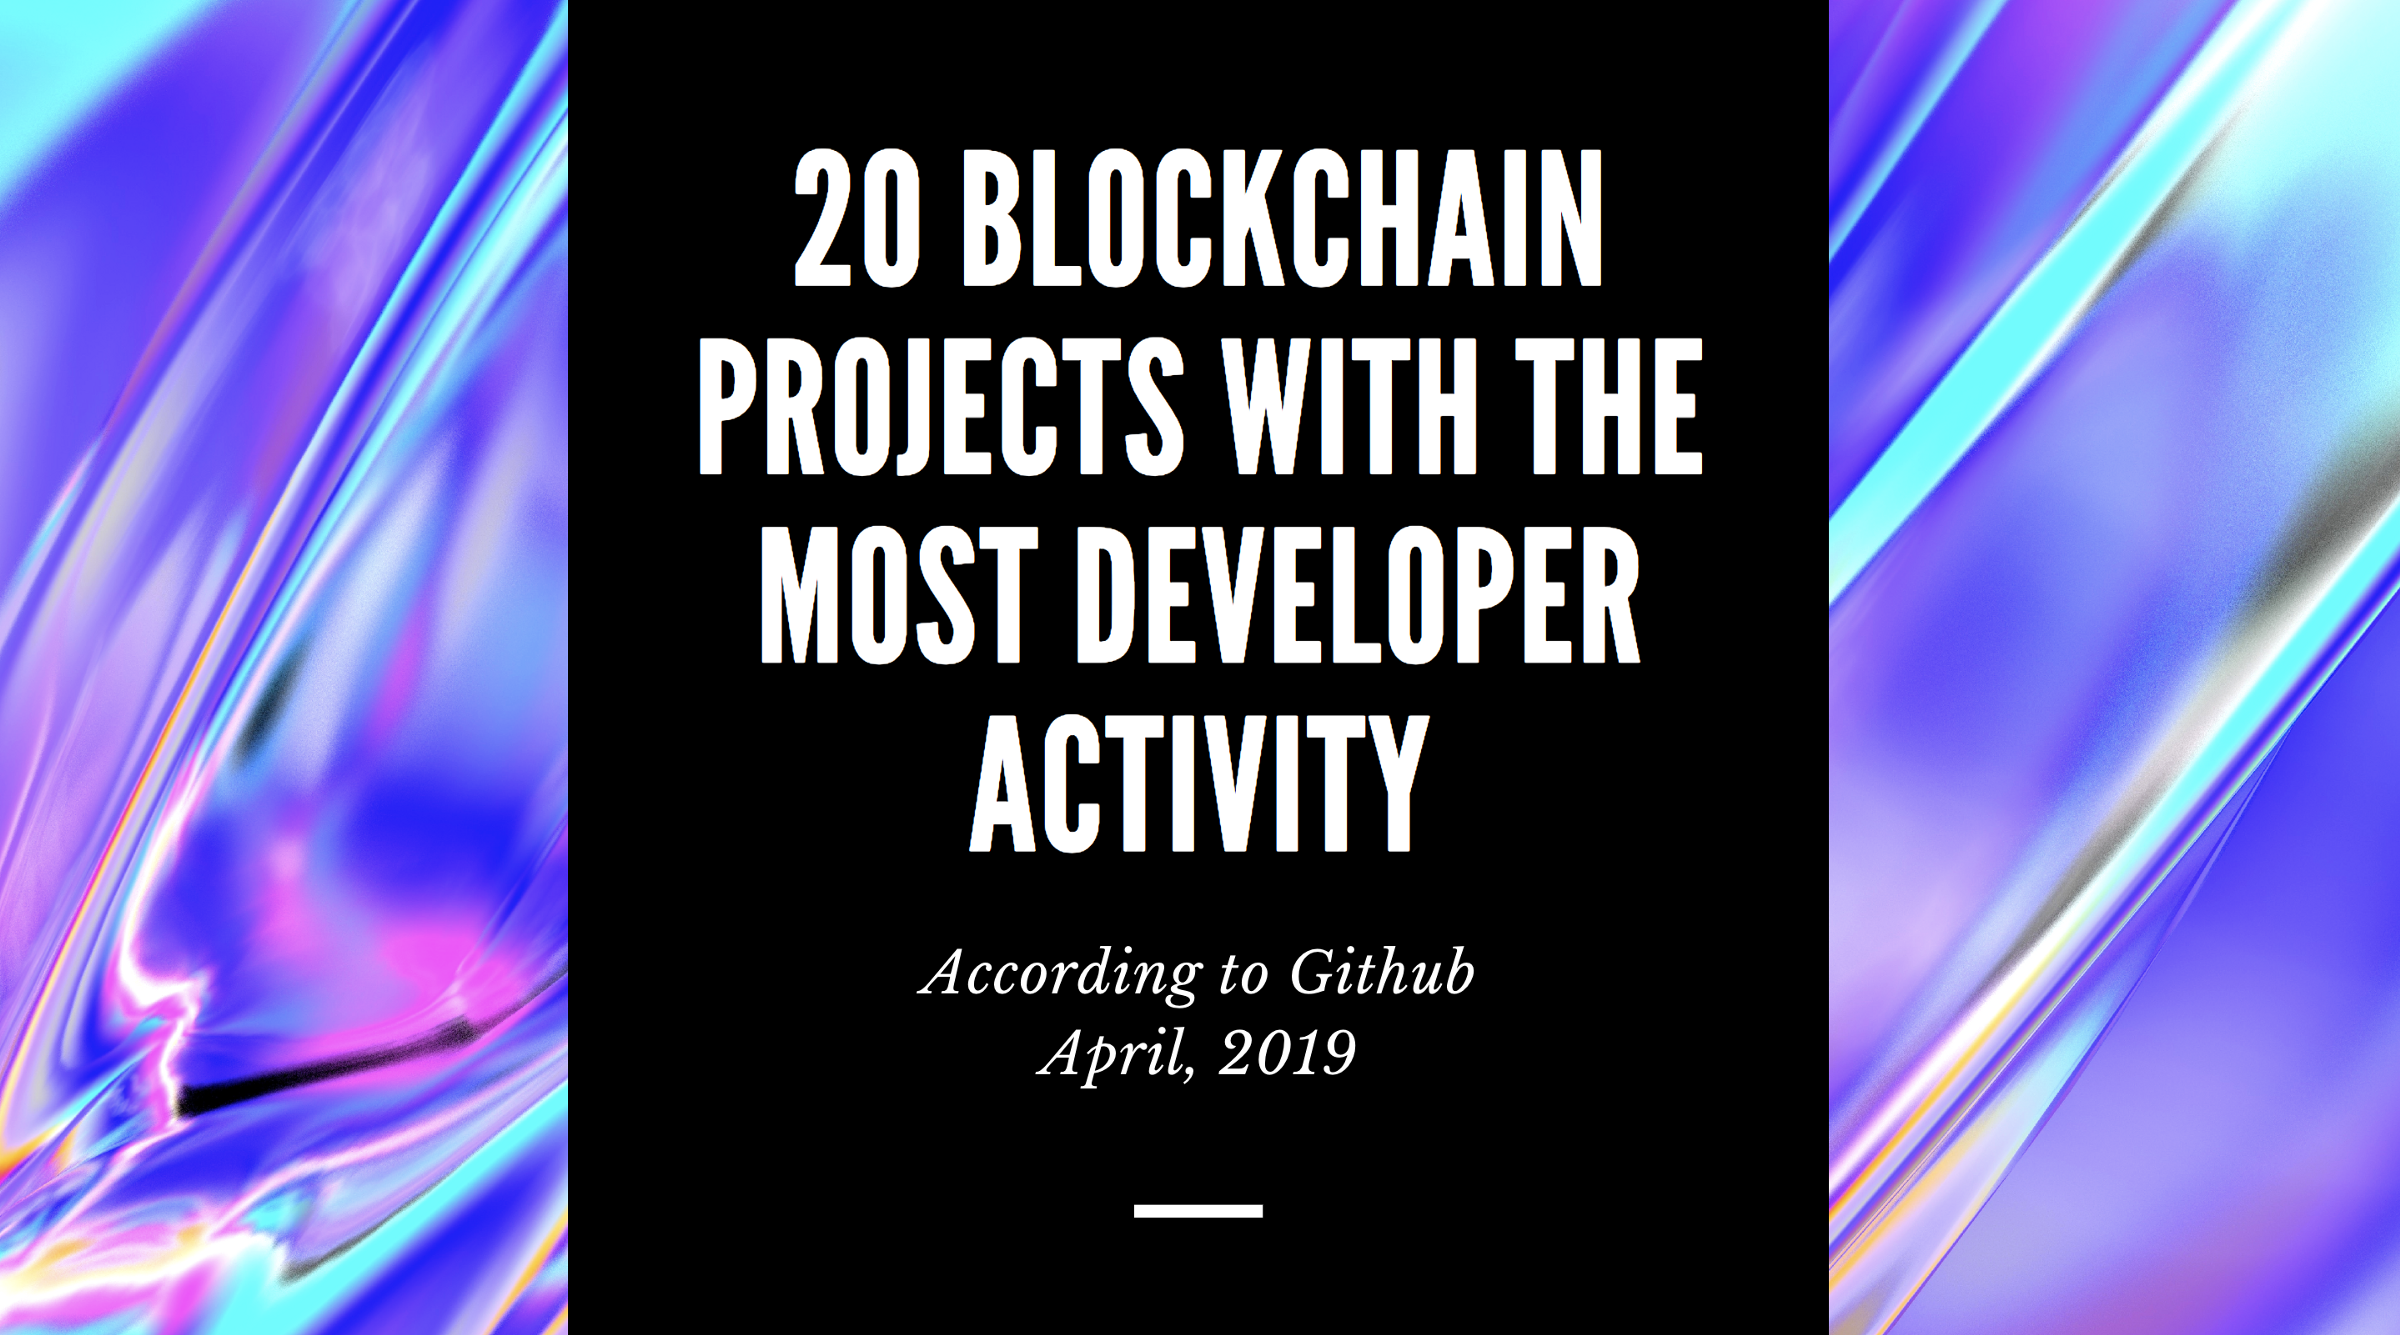 ethereum blockchain projects